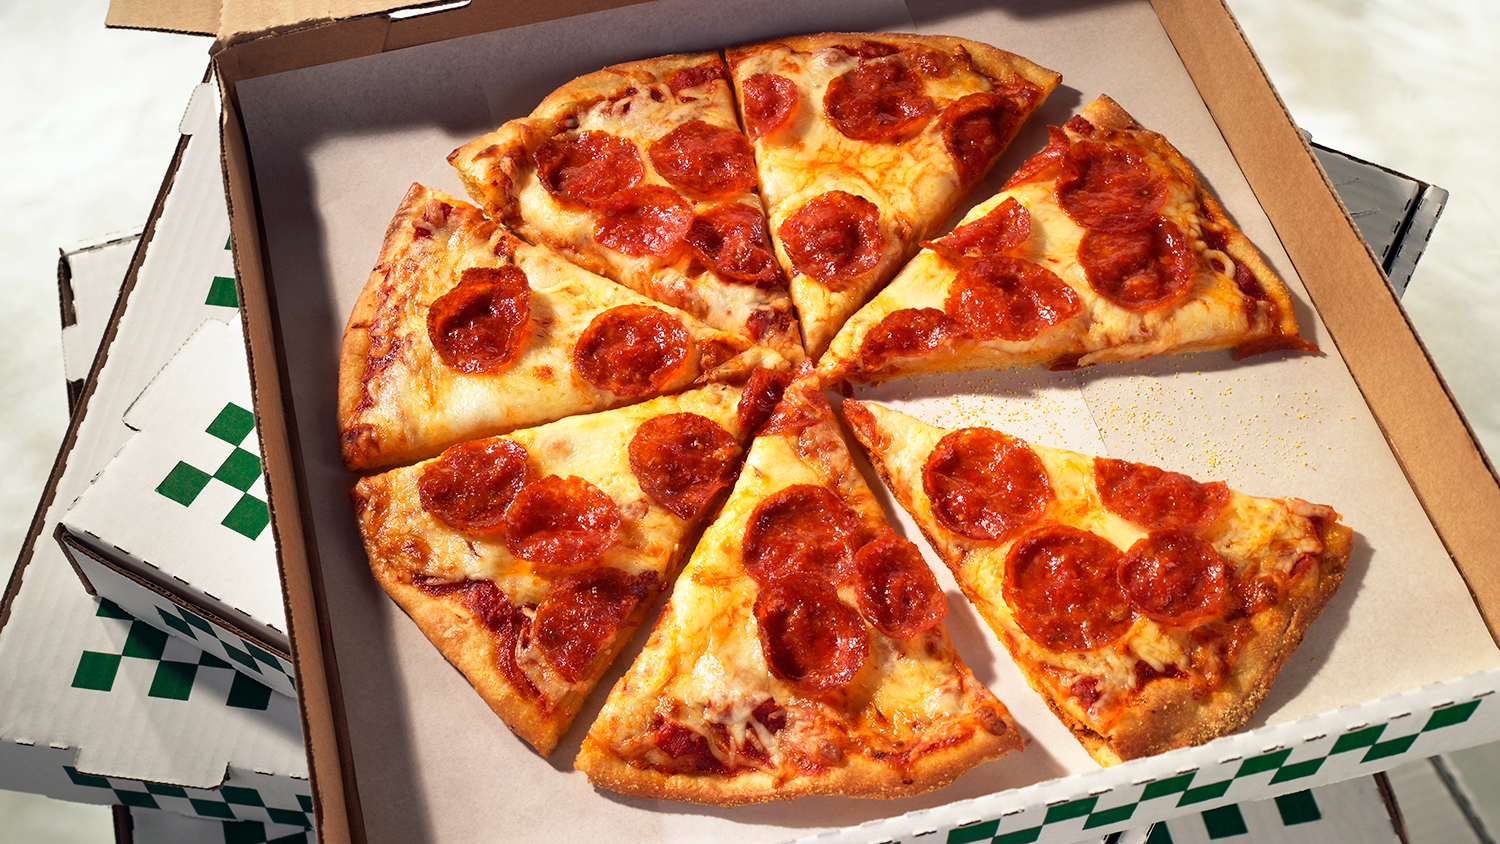 Delta Tries to Alleviate Travel Headaches with Free Pizza